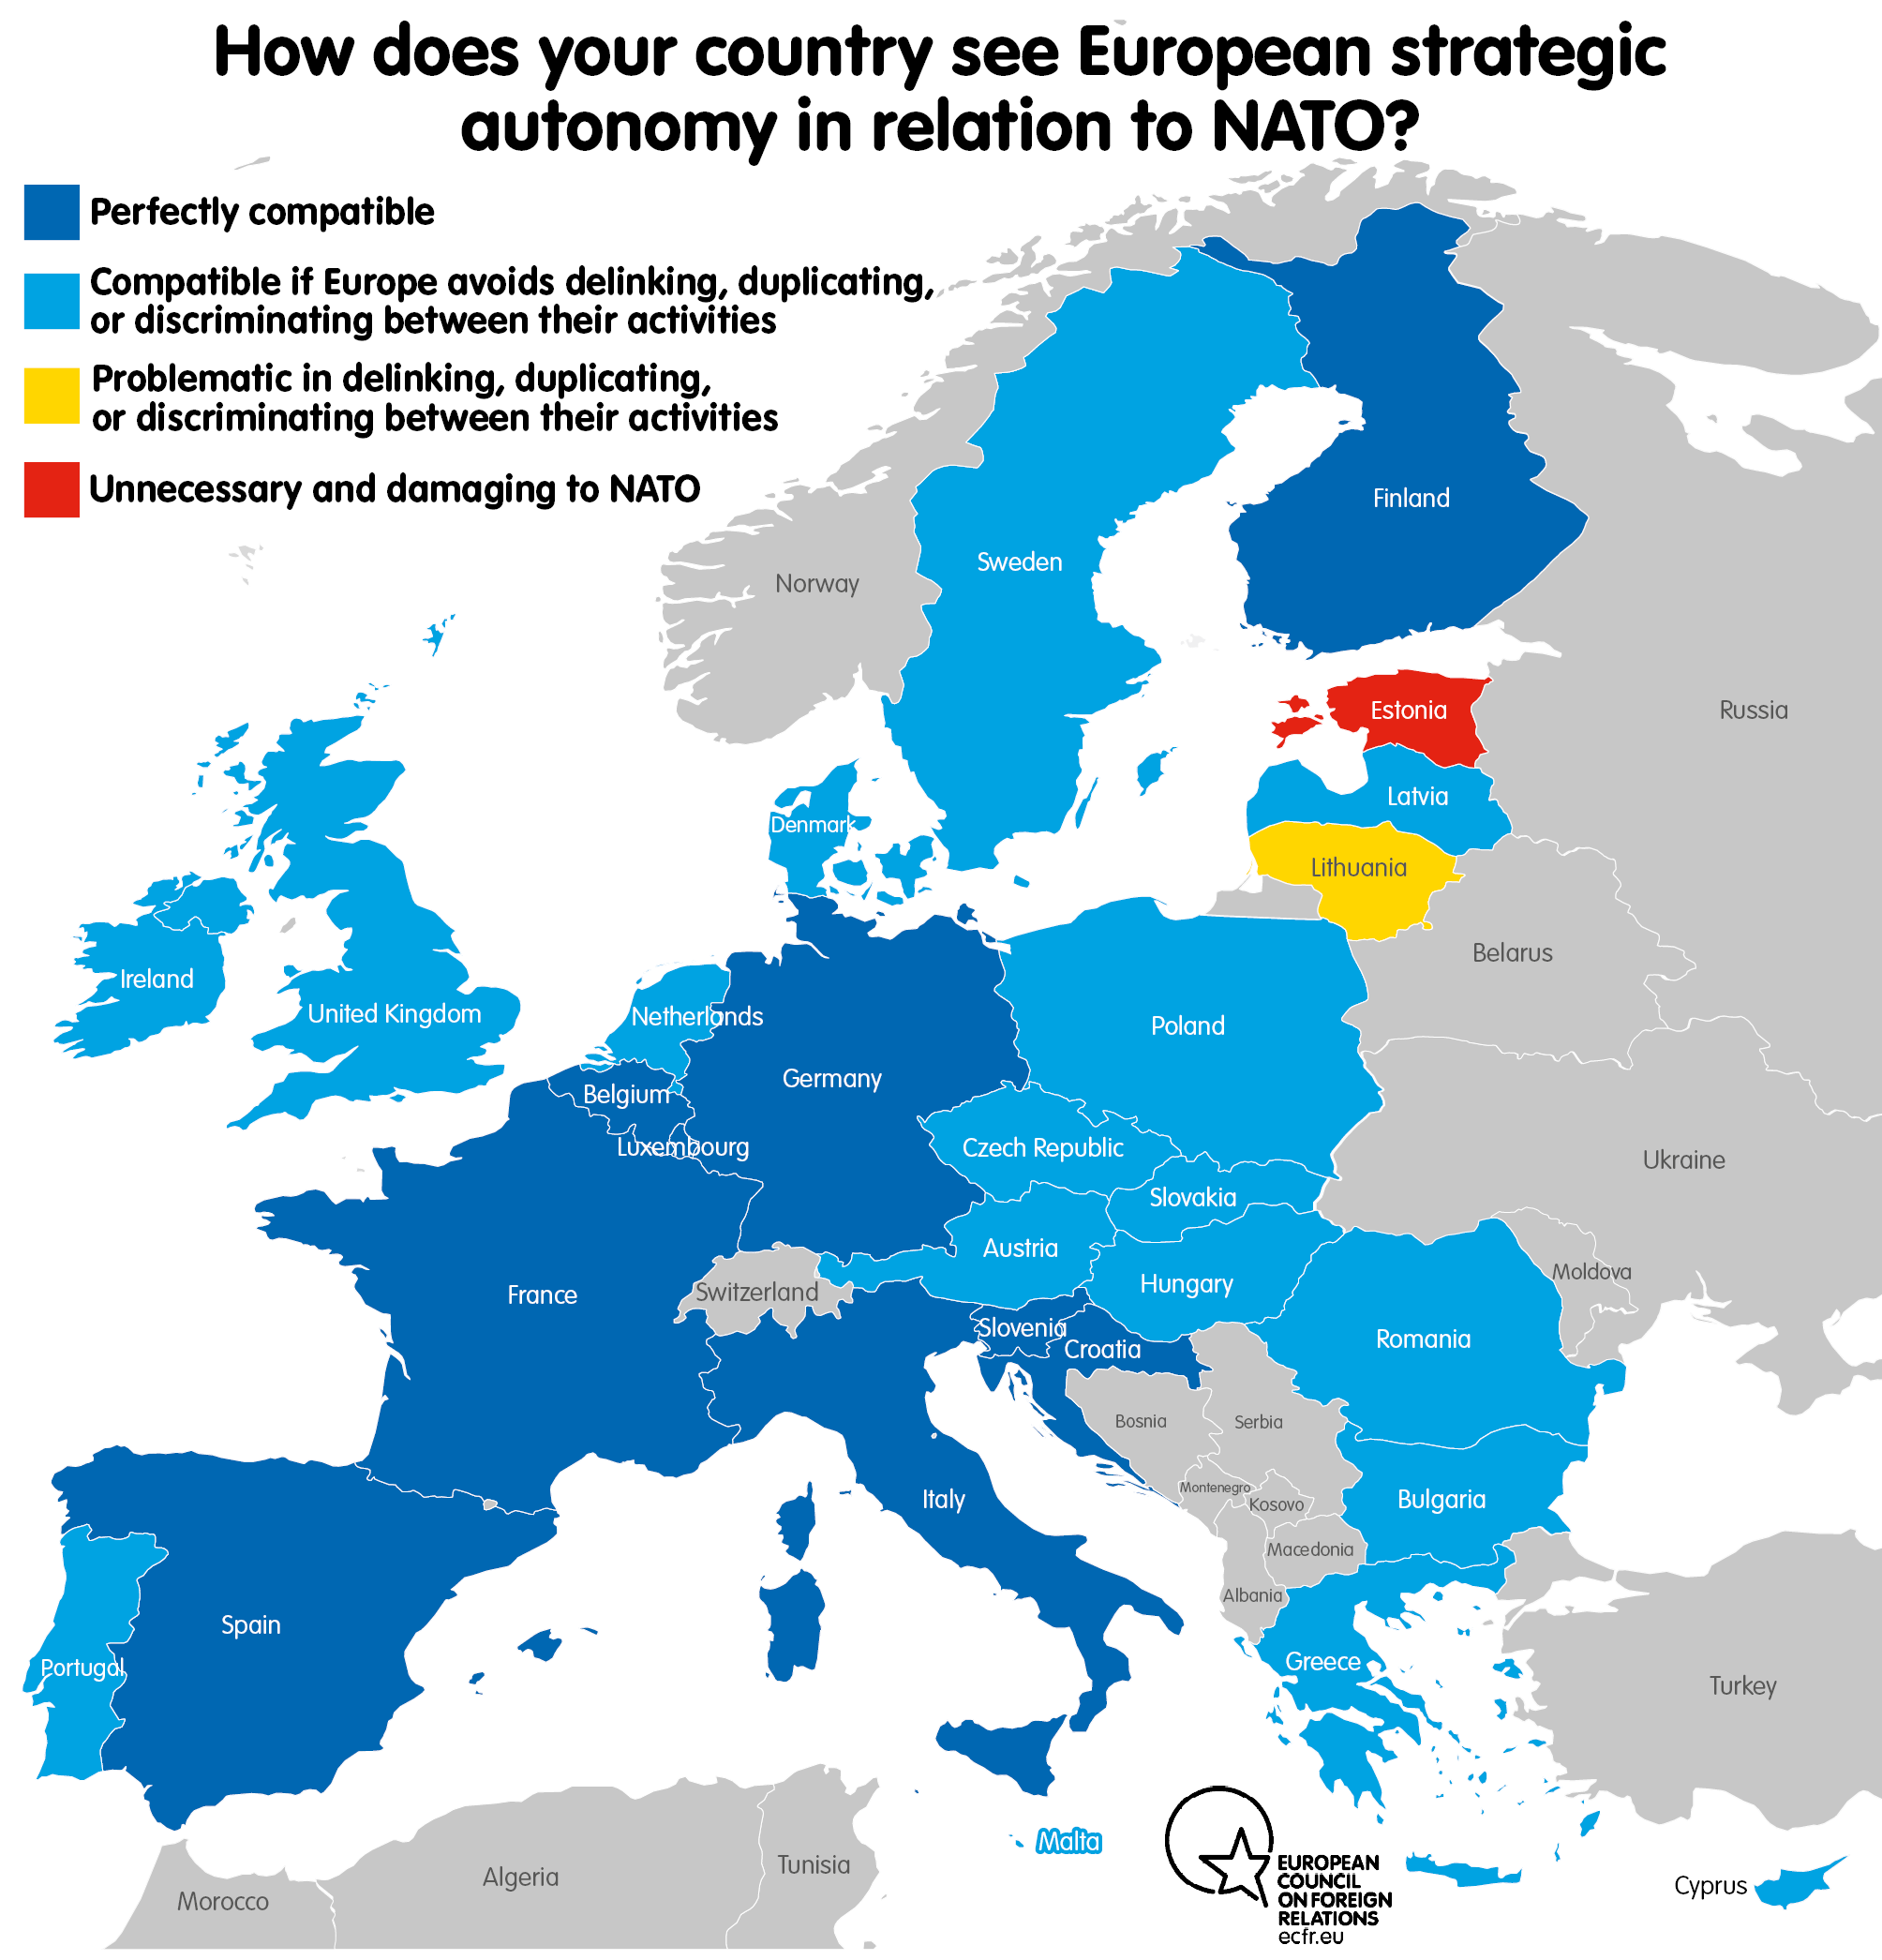 How does your country see European strategic autonomy in relation to NATO